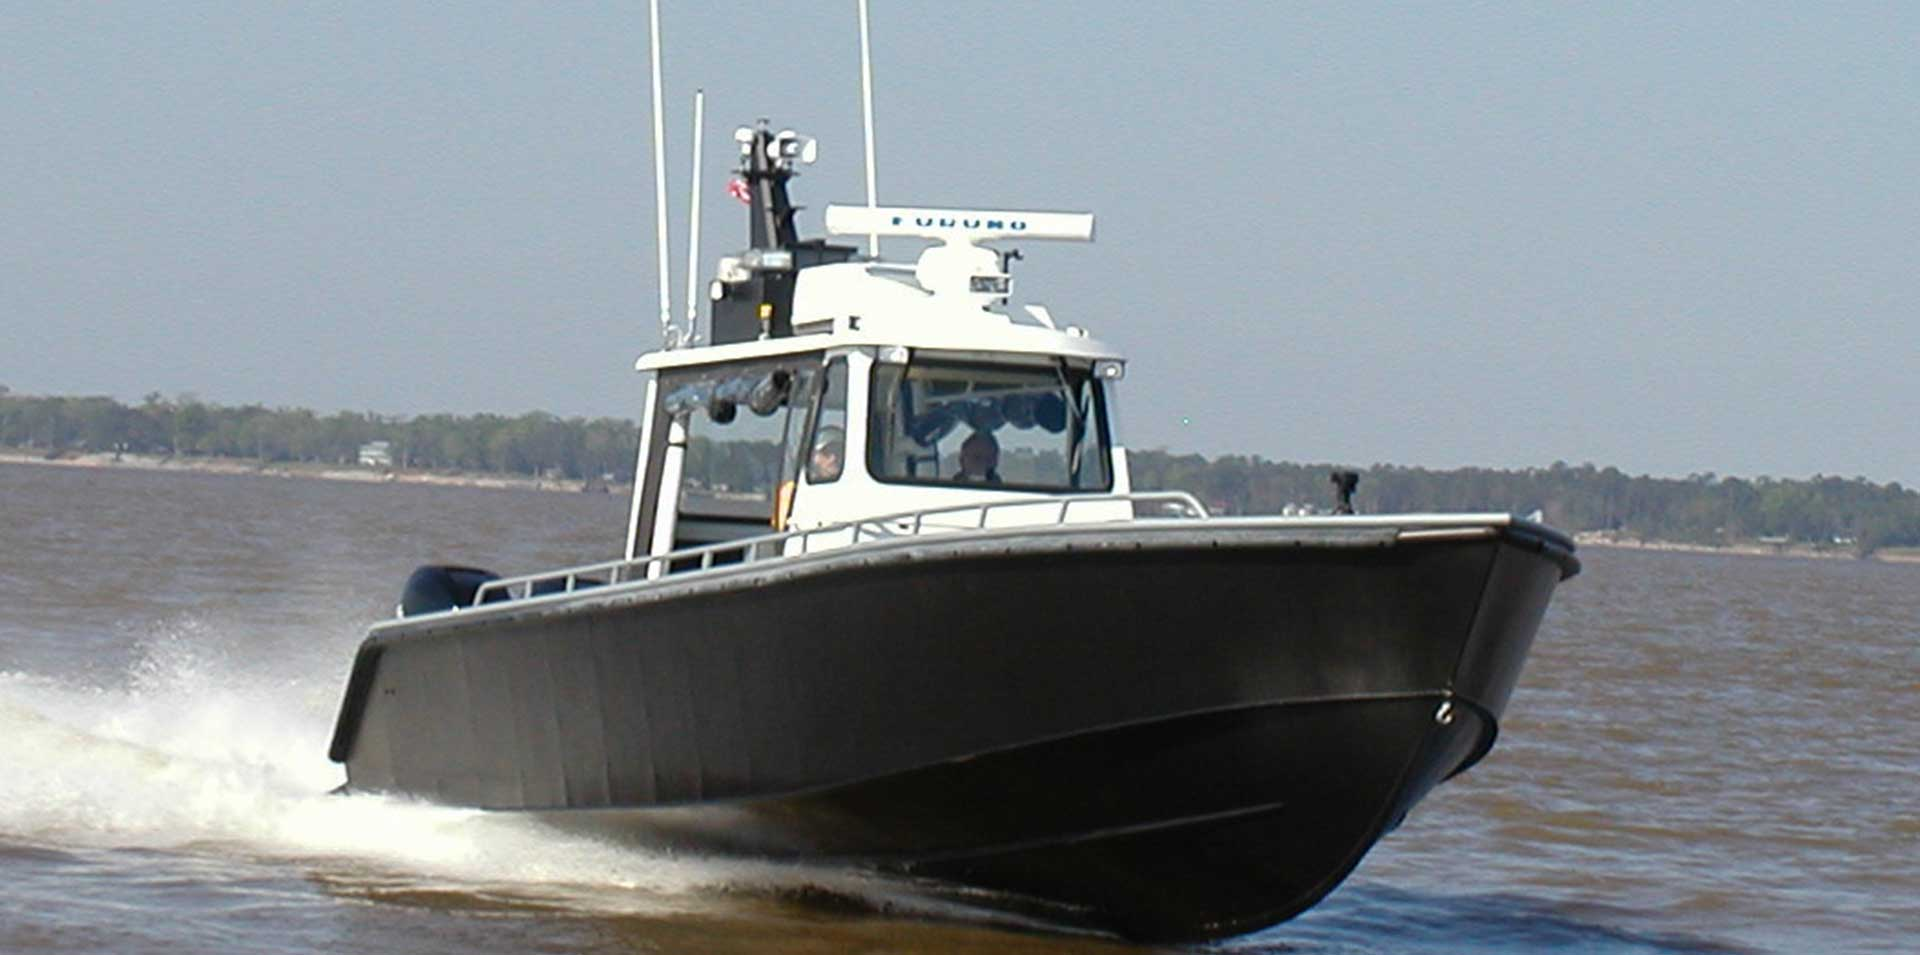 Silver Ships Endeavor Series aluminum patrol boat